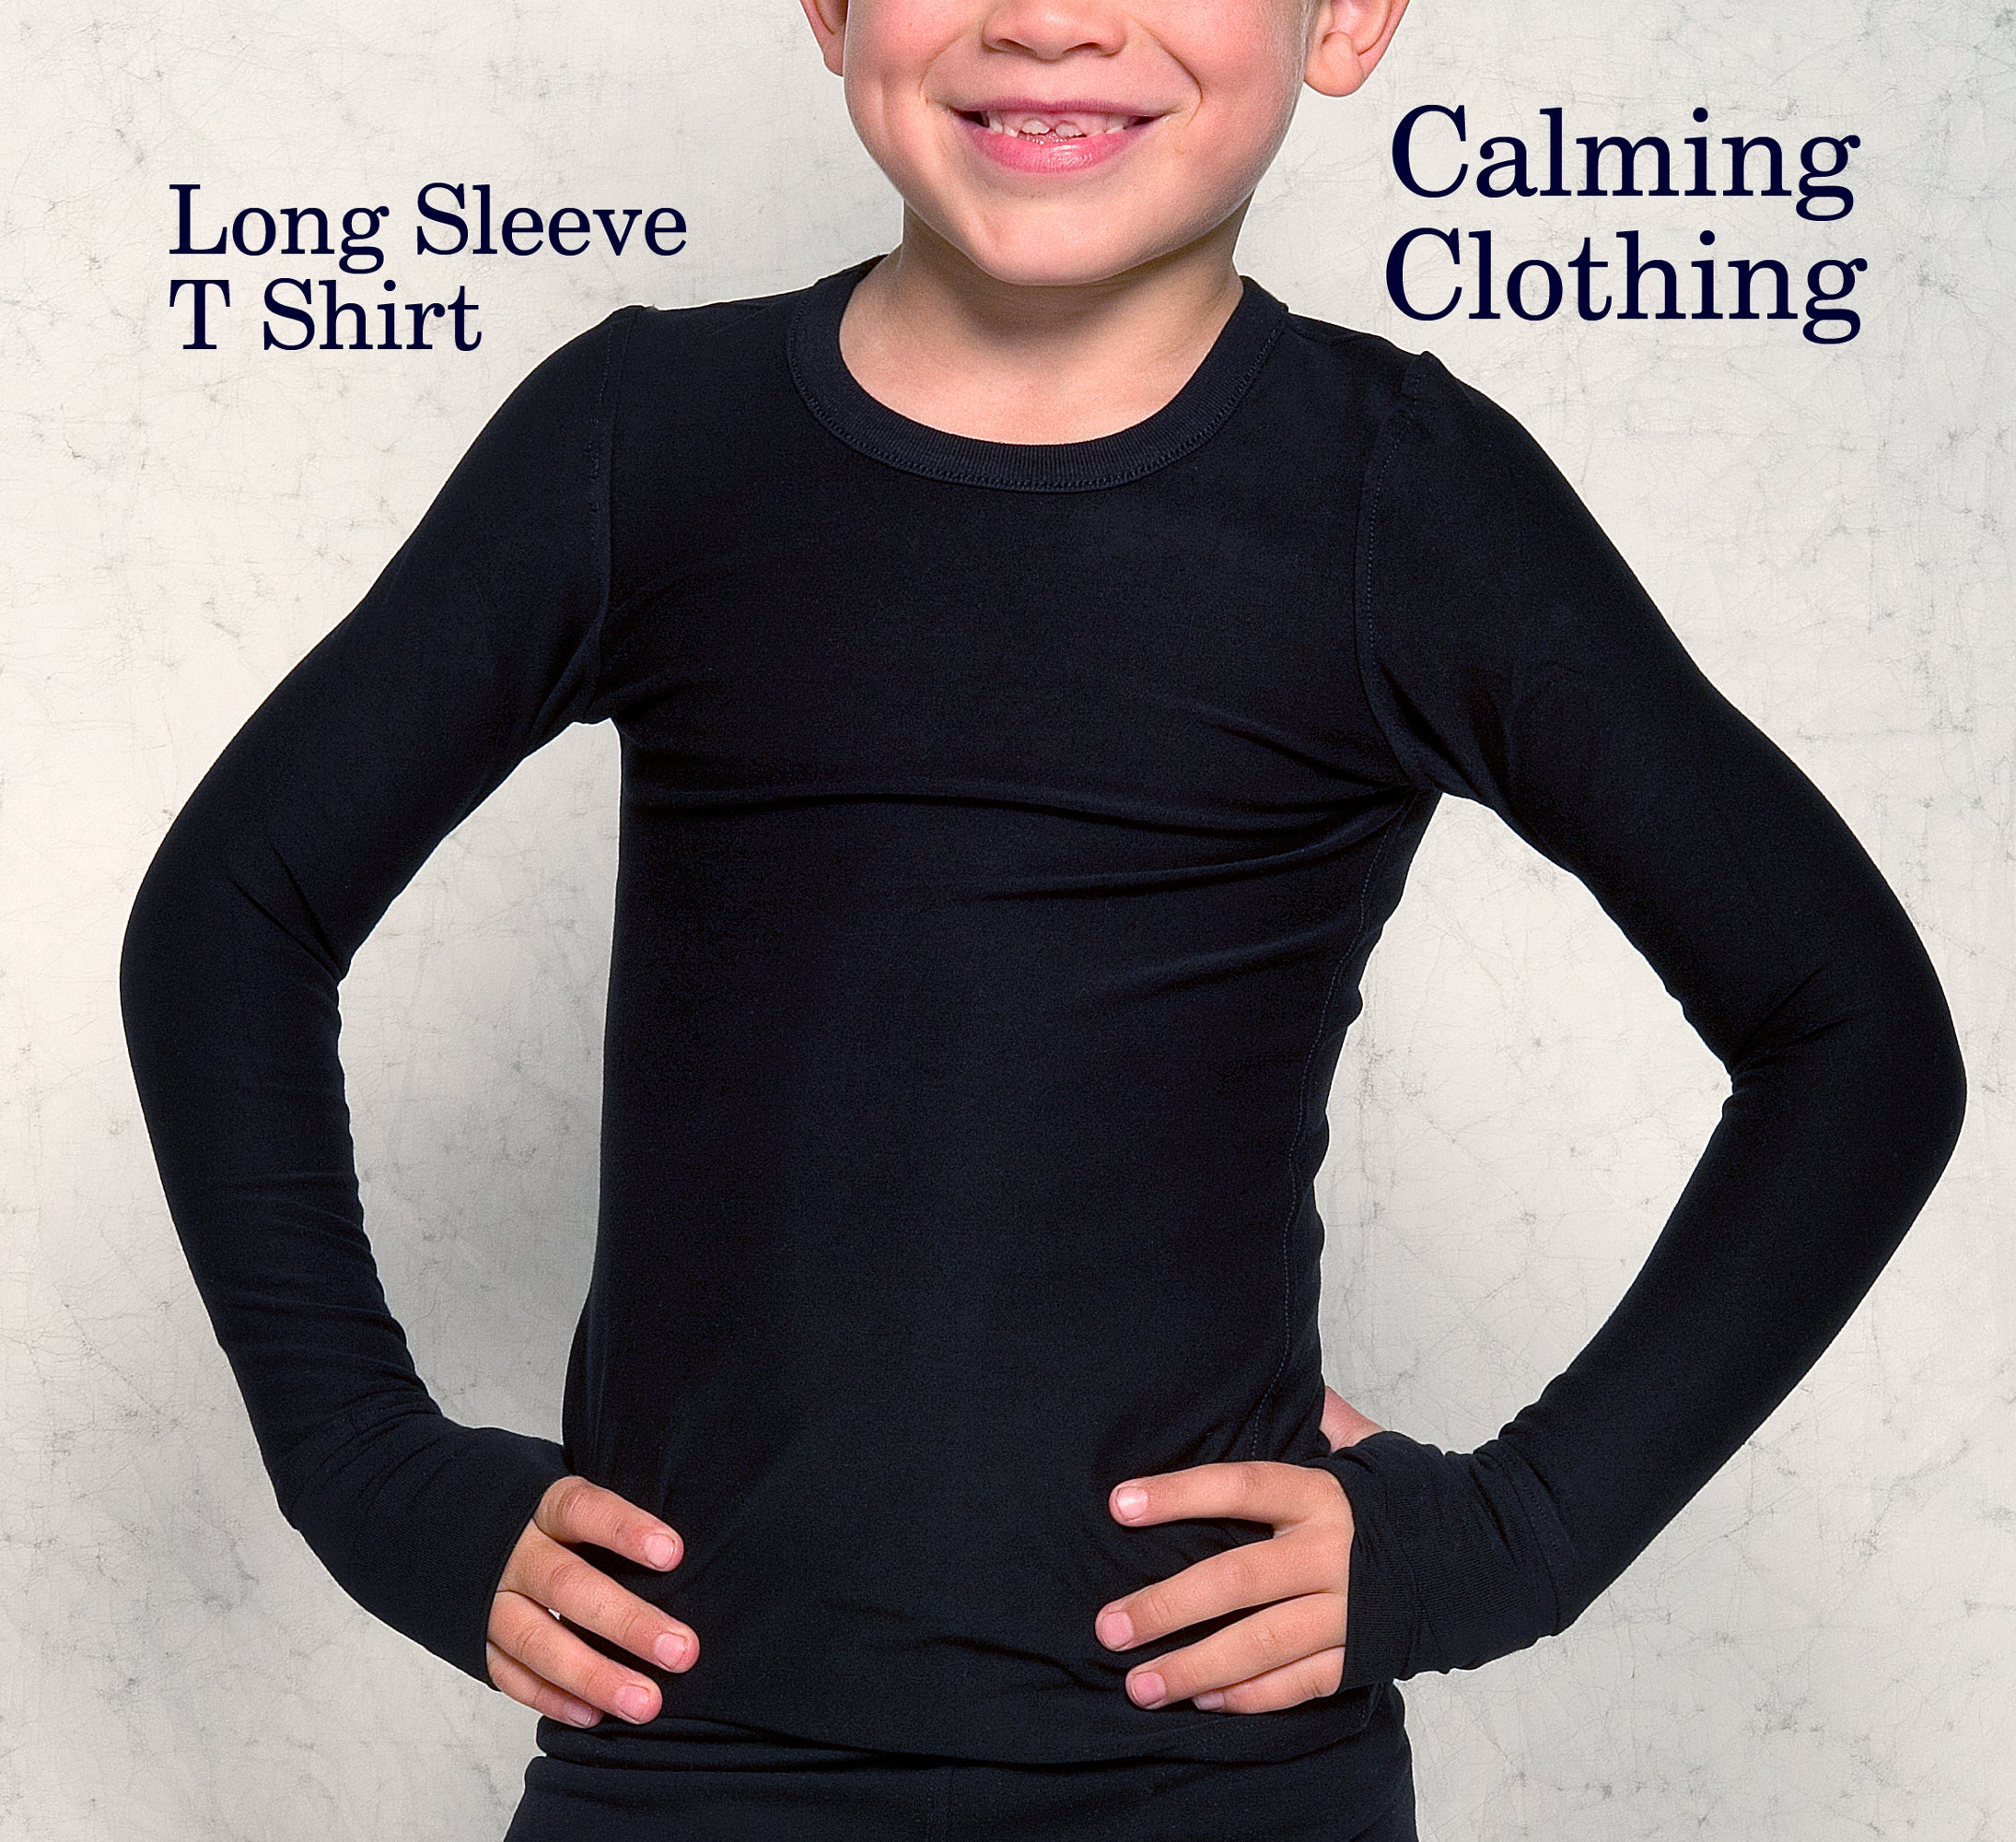 Calming Clothing Long Sleeve Tshirt (Black)